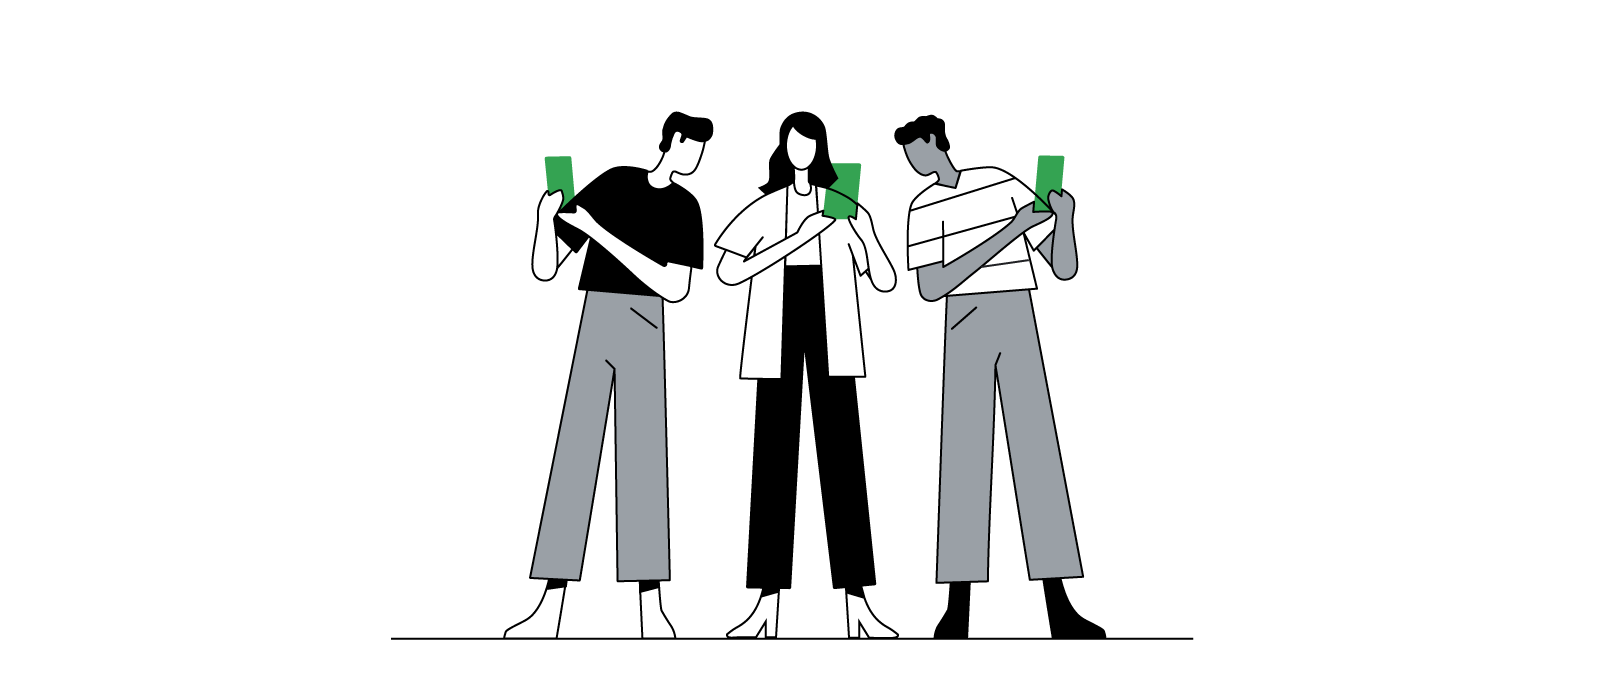 An illustration of a group of people comparing smartphone screens.